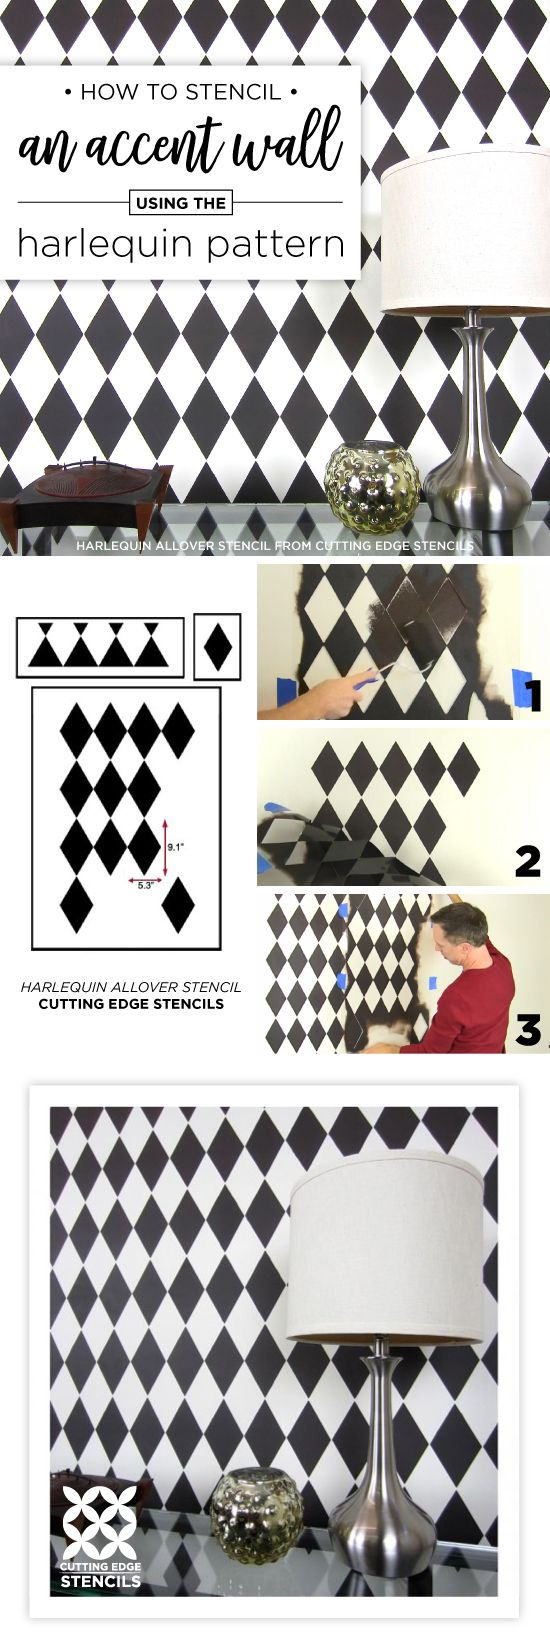 Best 25 diamond wall ideas on pinterest wall patterns macrame cutting edge stencils shares a stencil tutorial showing how to paint the harlequin allover pattern a diamond wall stencil amipublicfo Choice Image